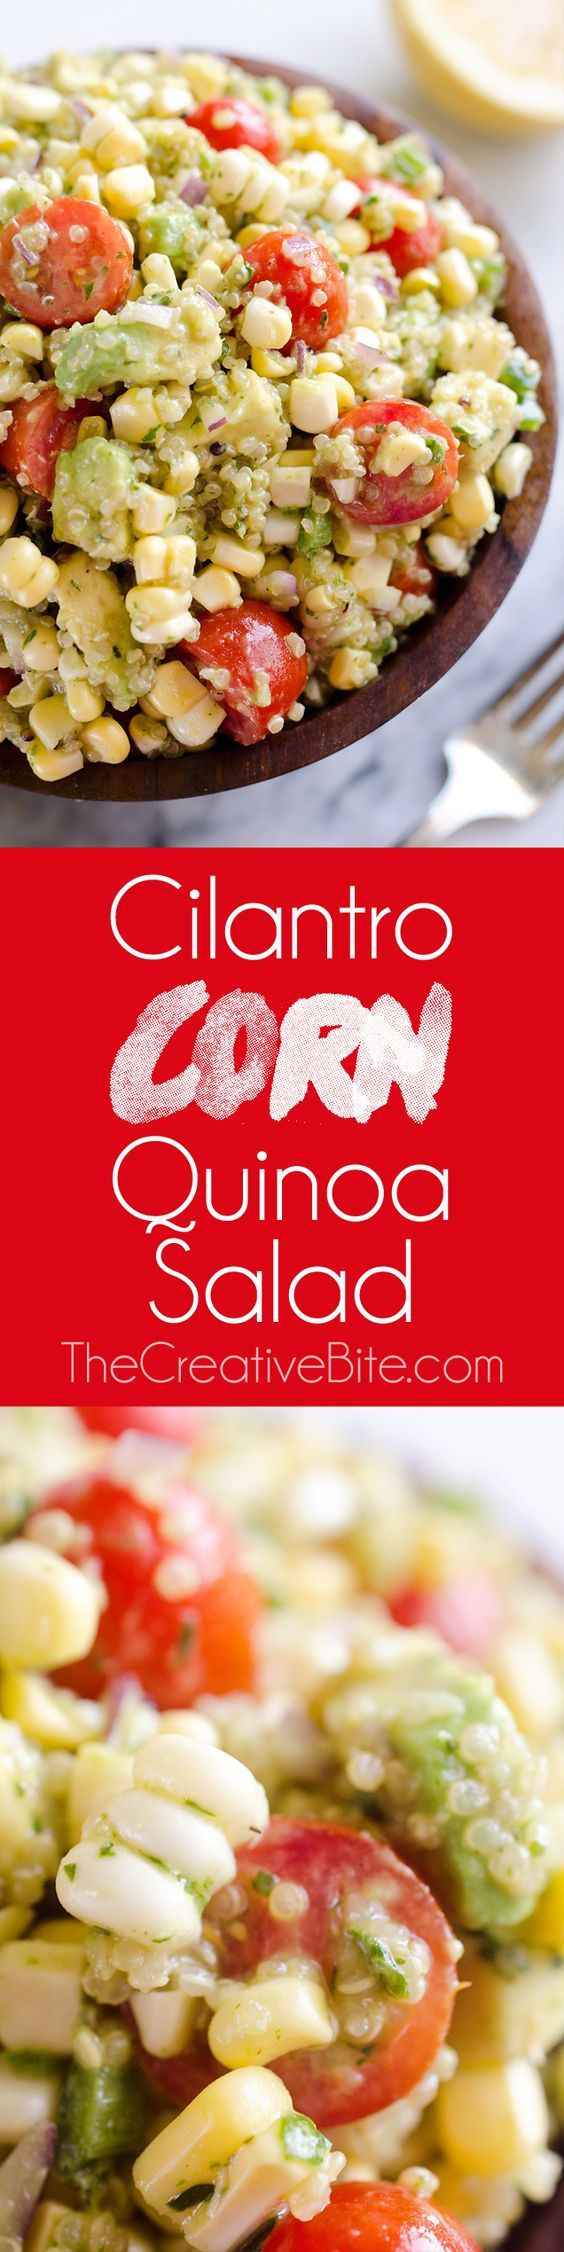 Cilantro Quinoa Corn Salad is a light and refreshing salad perfect for an easy packed lunch or a side salad for a cookout. This salad is a healthy combination of quinoa, corn, avocado and a light Cilantro Lemon dressing with a kick of spice from fresh jalapeños for a dish you will love! #Healthy #Salad #Quinoa